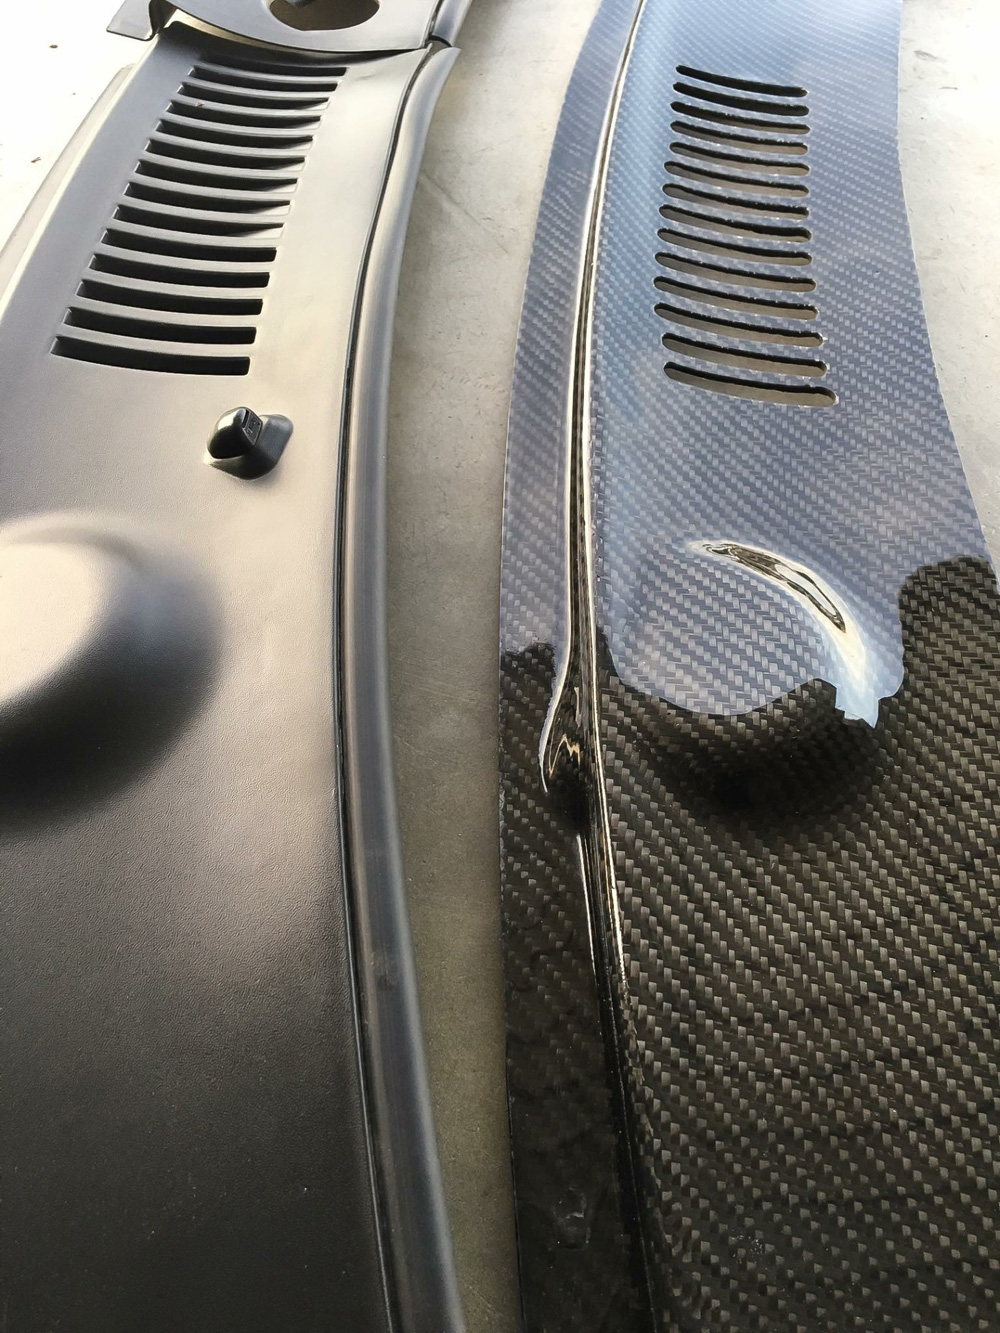 99-04 Mustang Carbon Fiber Cowl Panel (Filled Wipers) - CARBON FIBER